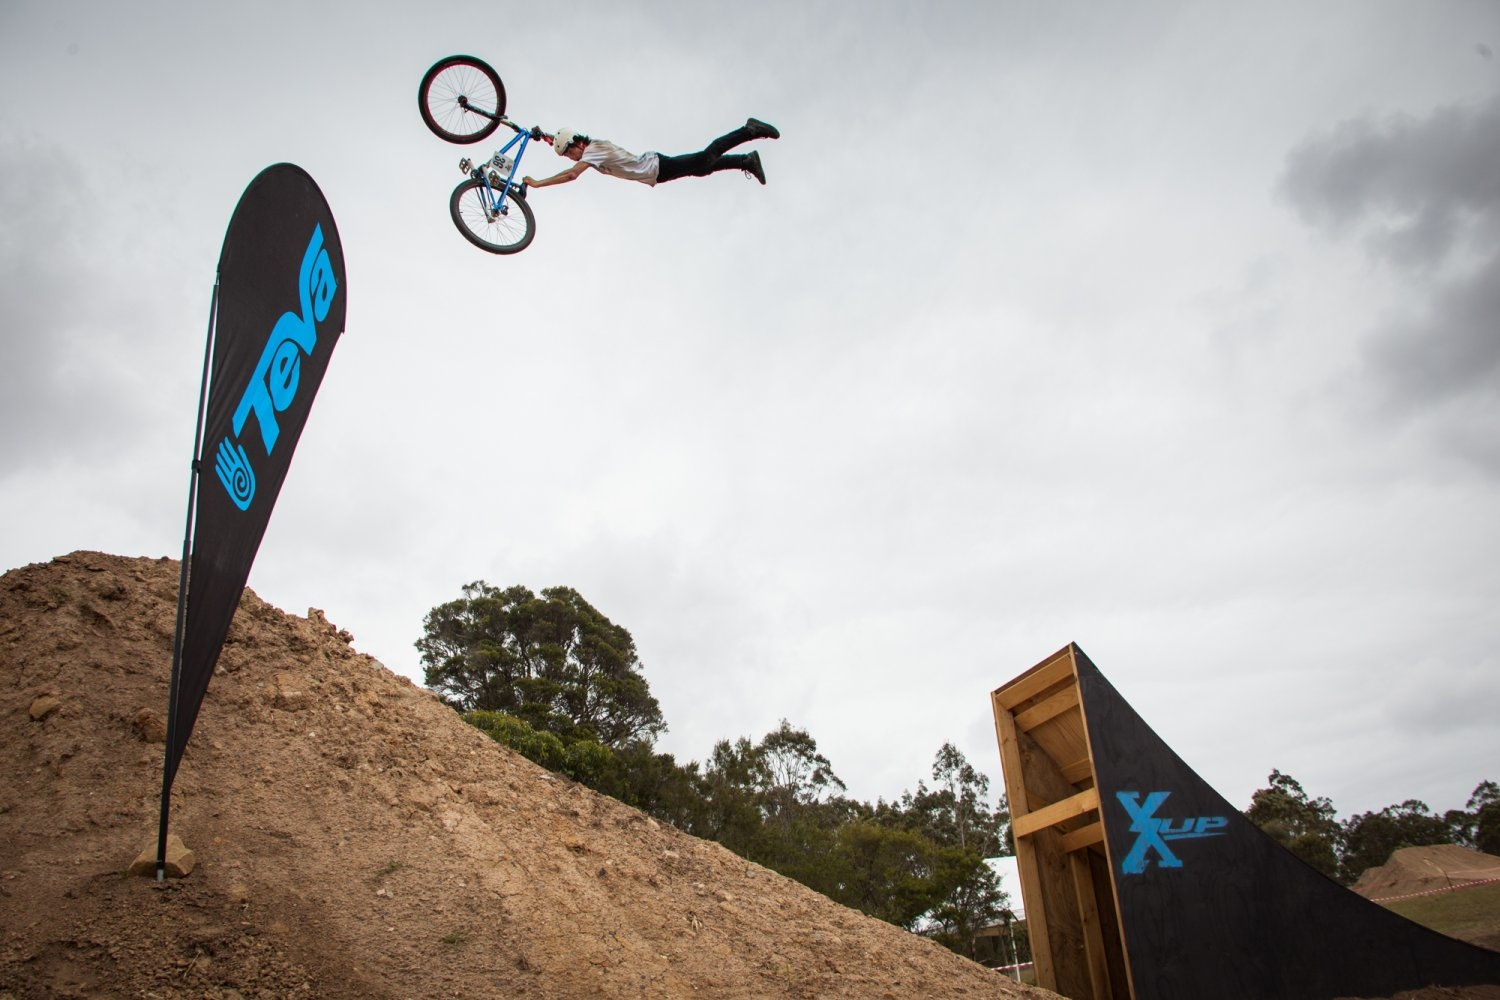 Lewis Jones at the X-up Freeride Festival in Australia.